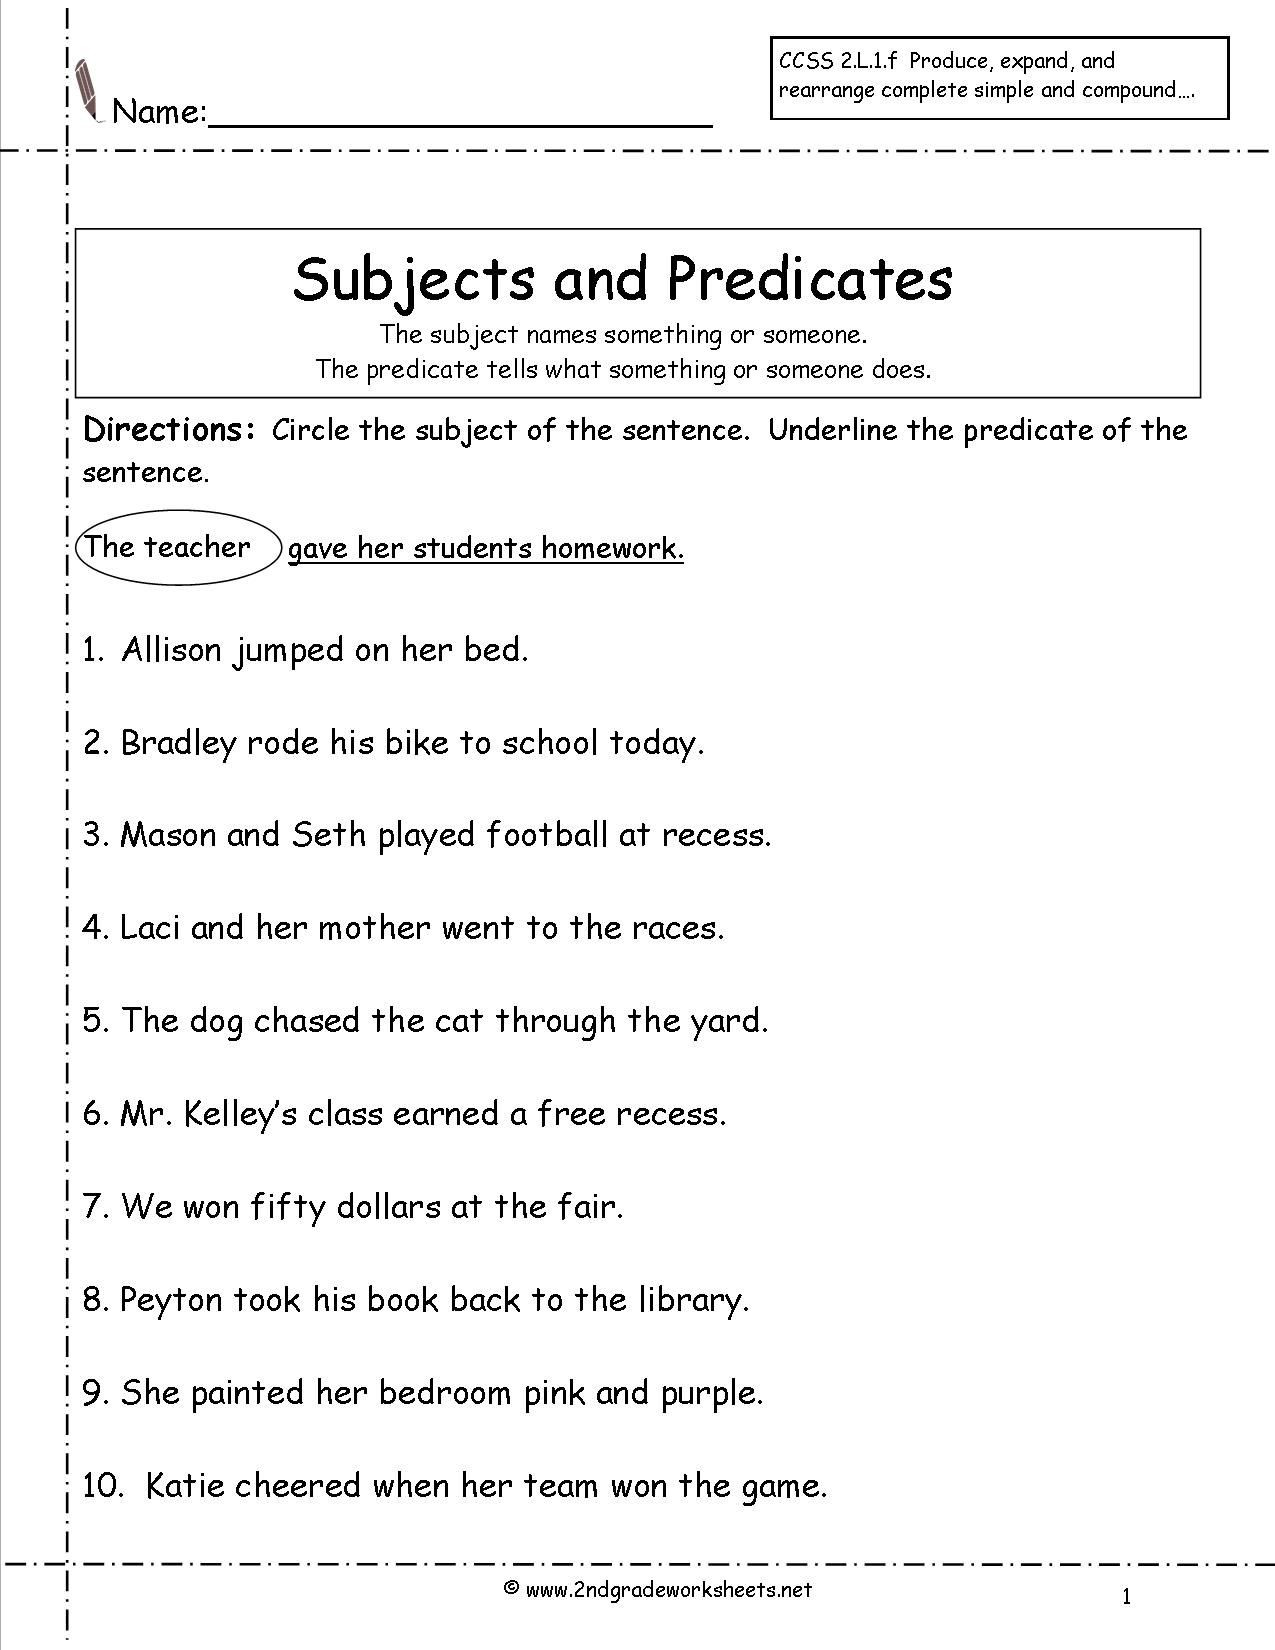 Number Sentence Worksheets 2nd Grade Subject Predicate Worksheets 2nd Grade Google Search